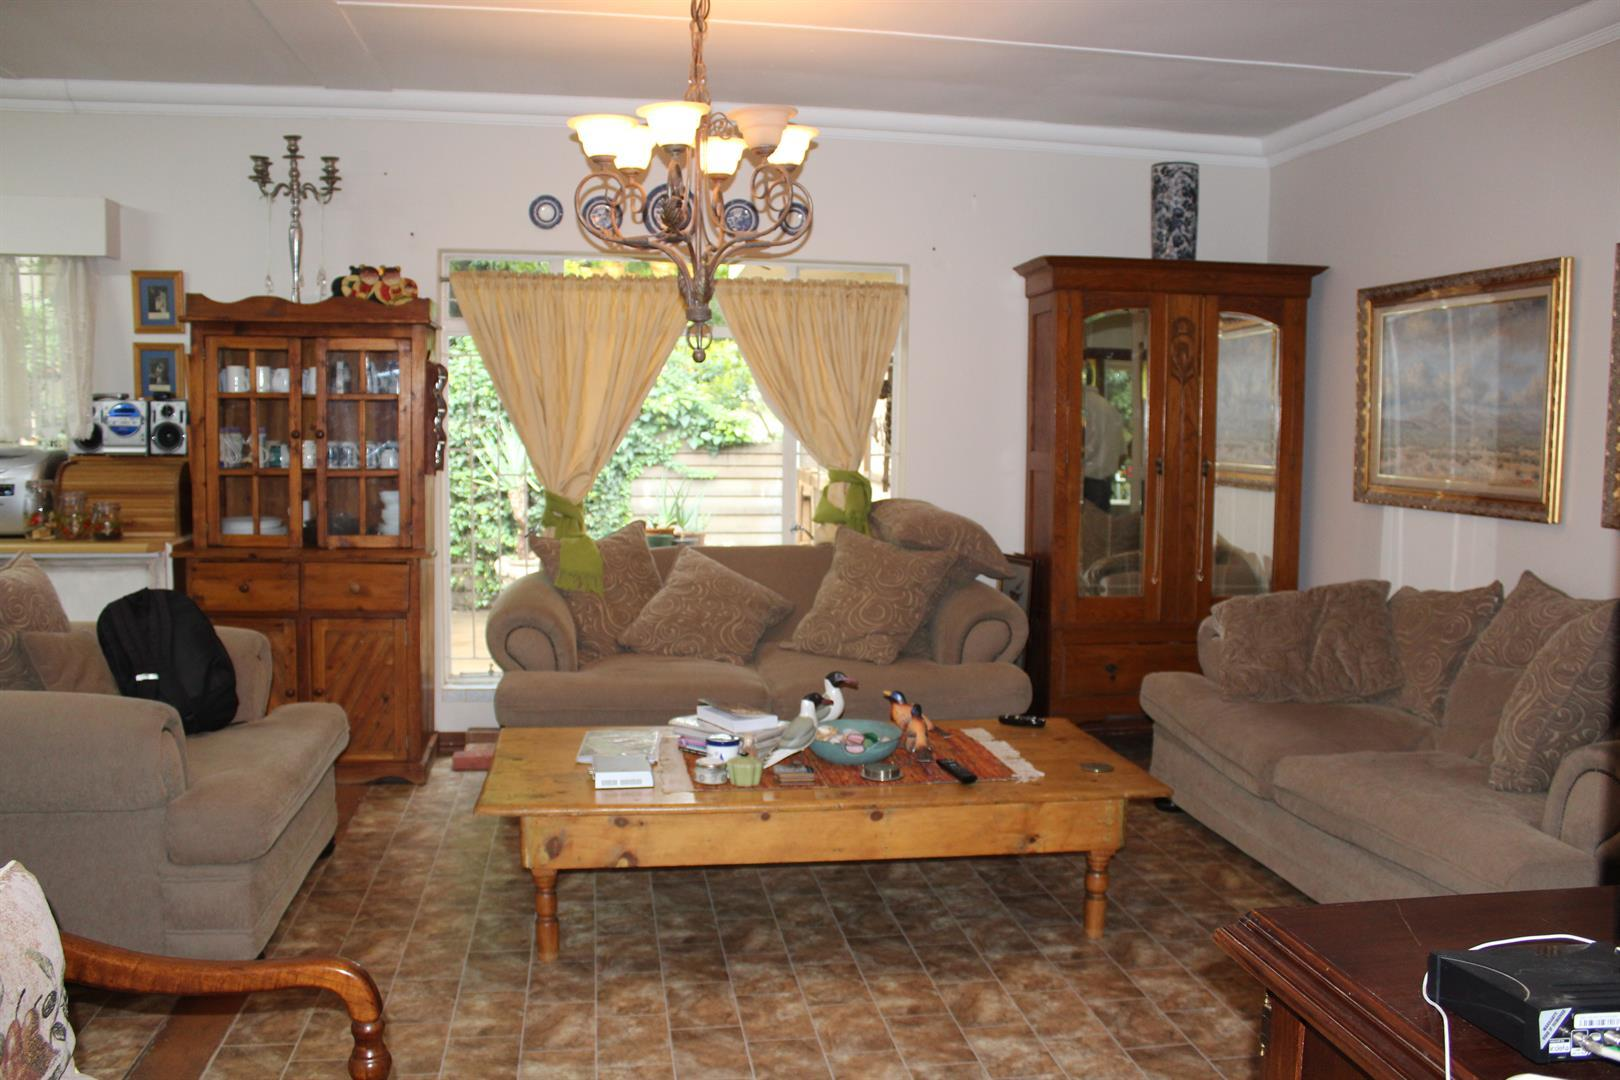 Potchefstroom Central property for sale. Ref No: 13453532. Picture no 2